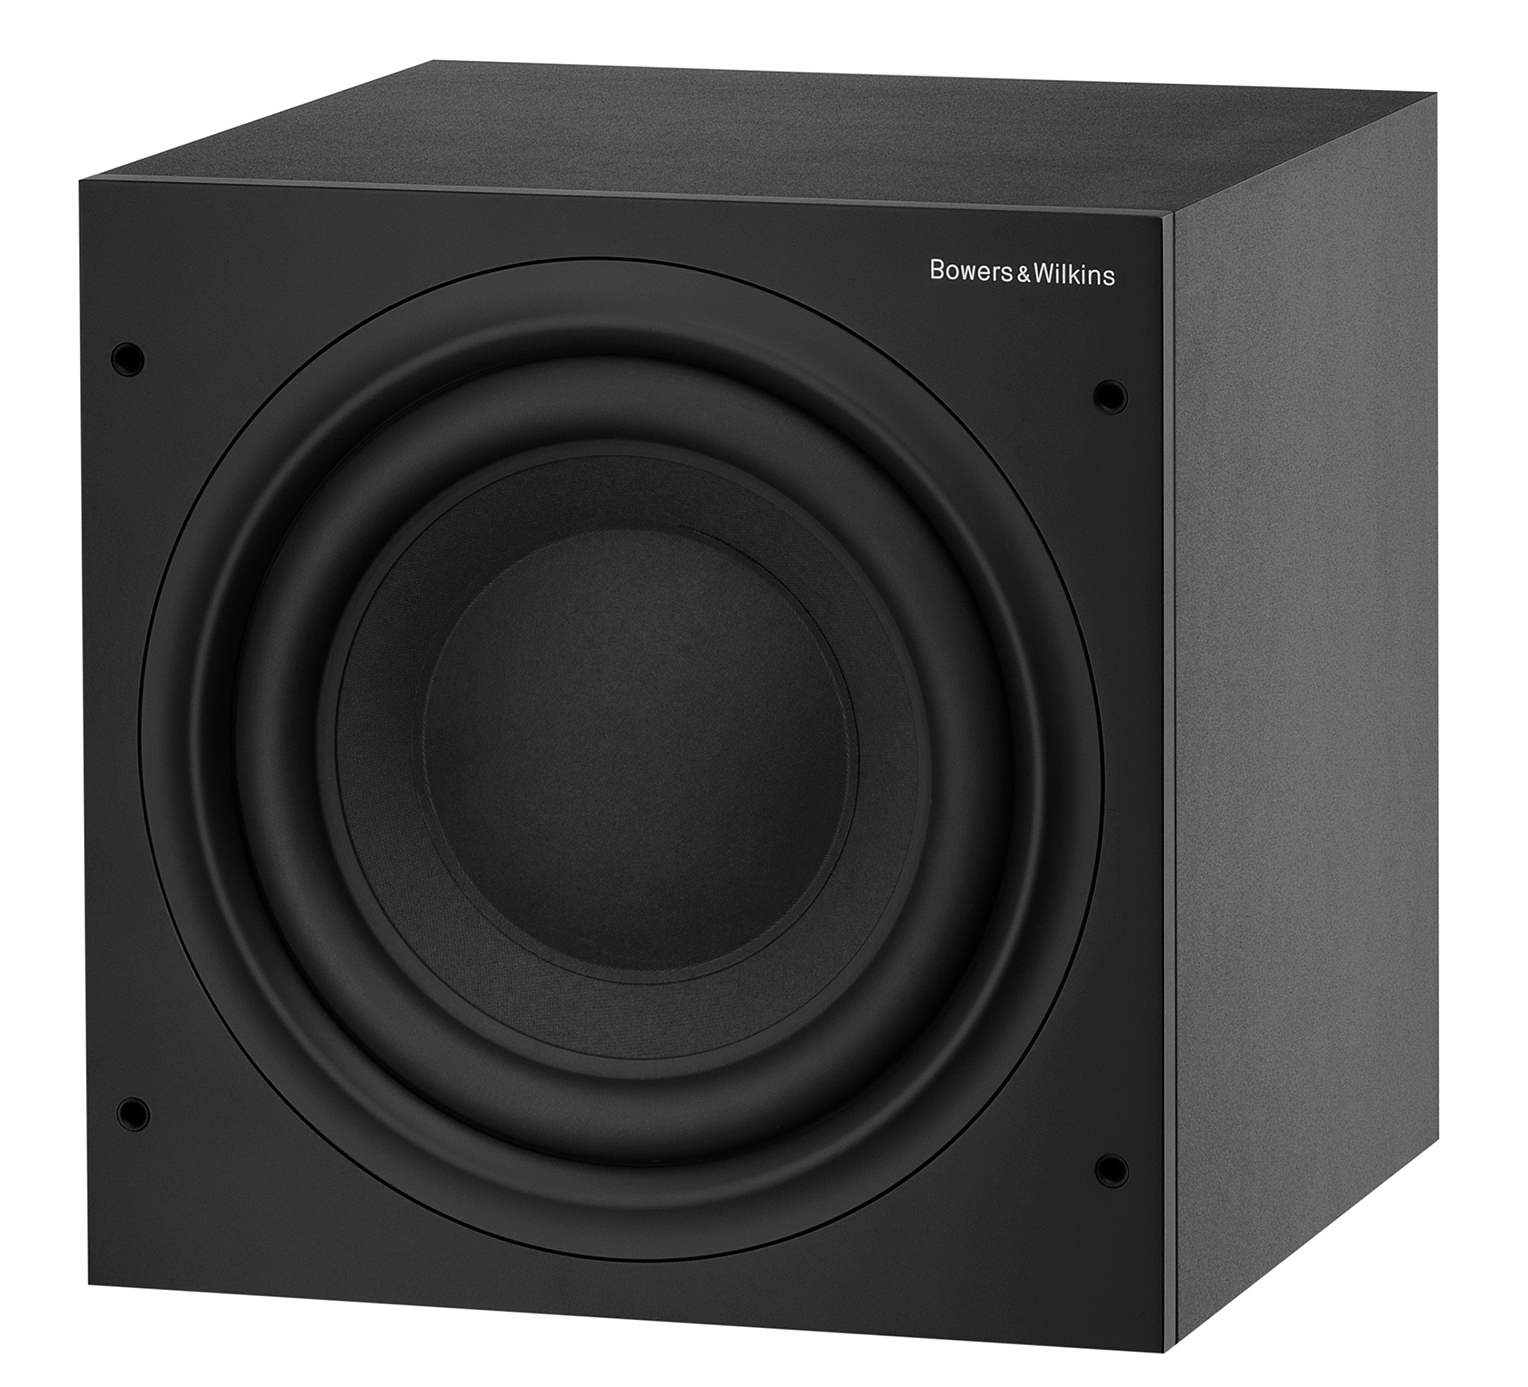 Bowers & Wilkins ASW610 (2018) black